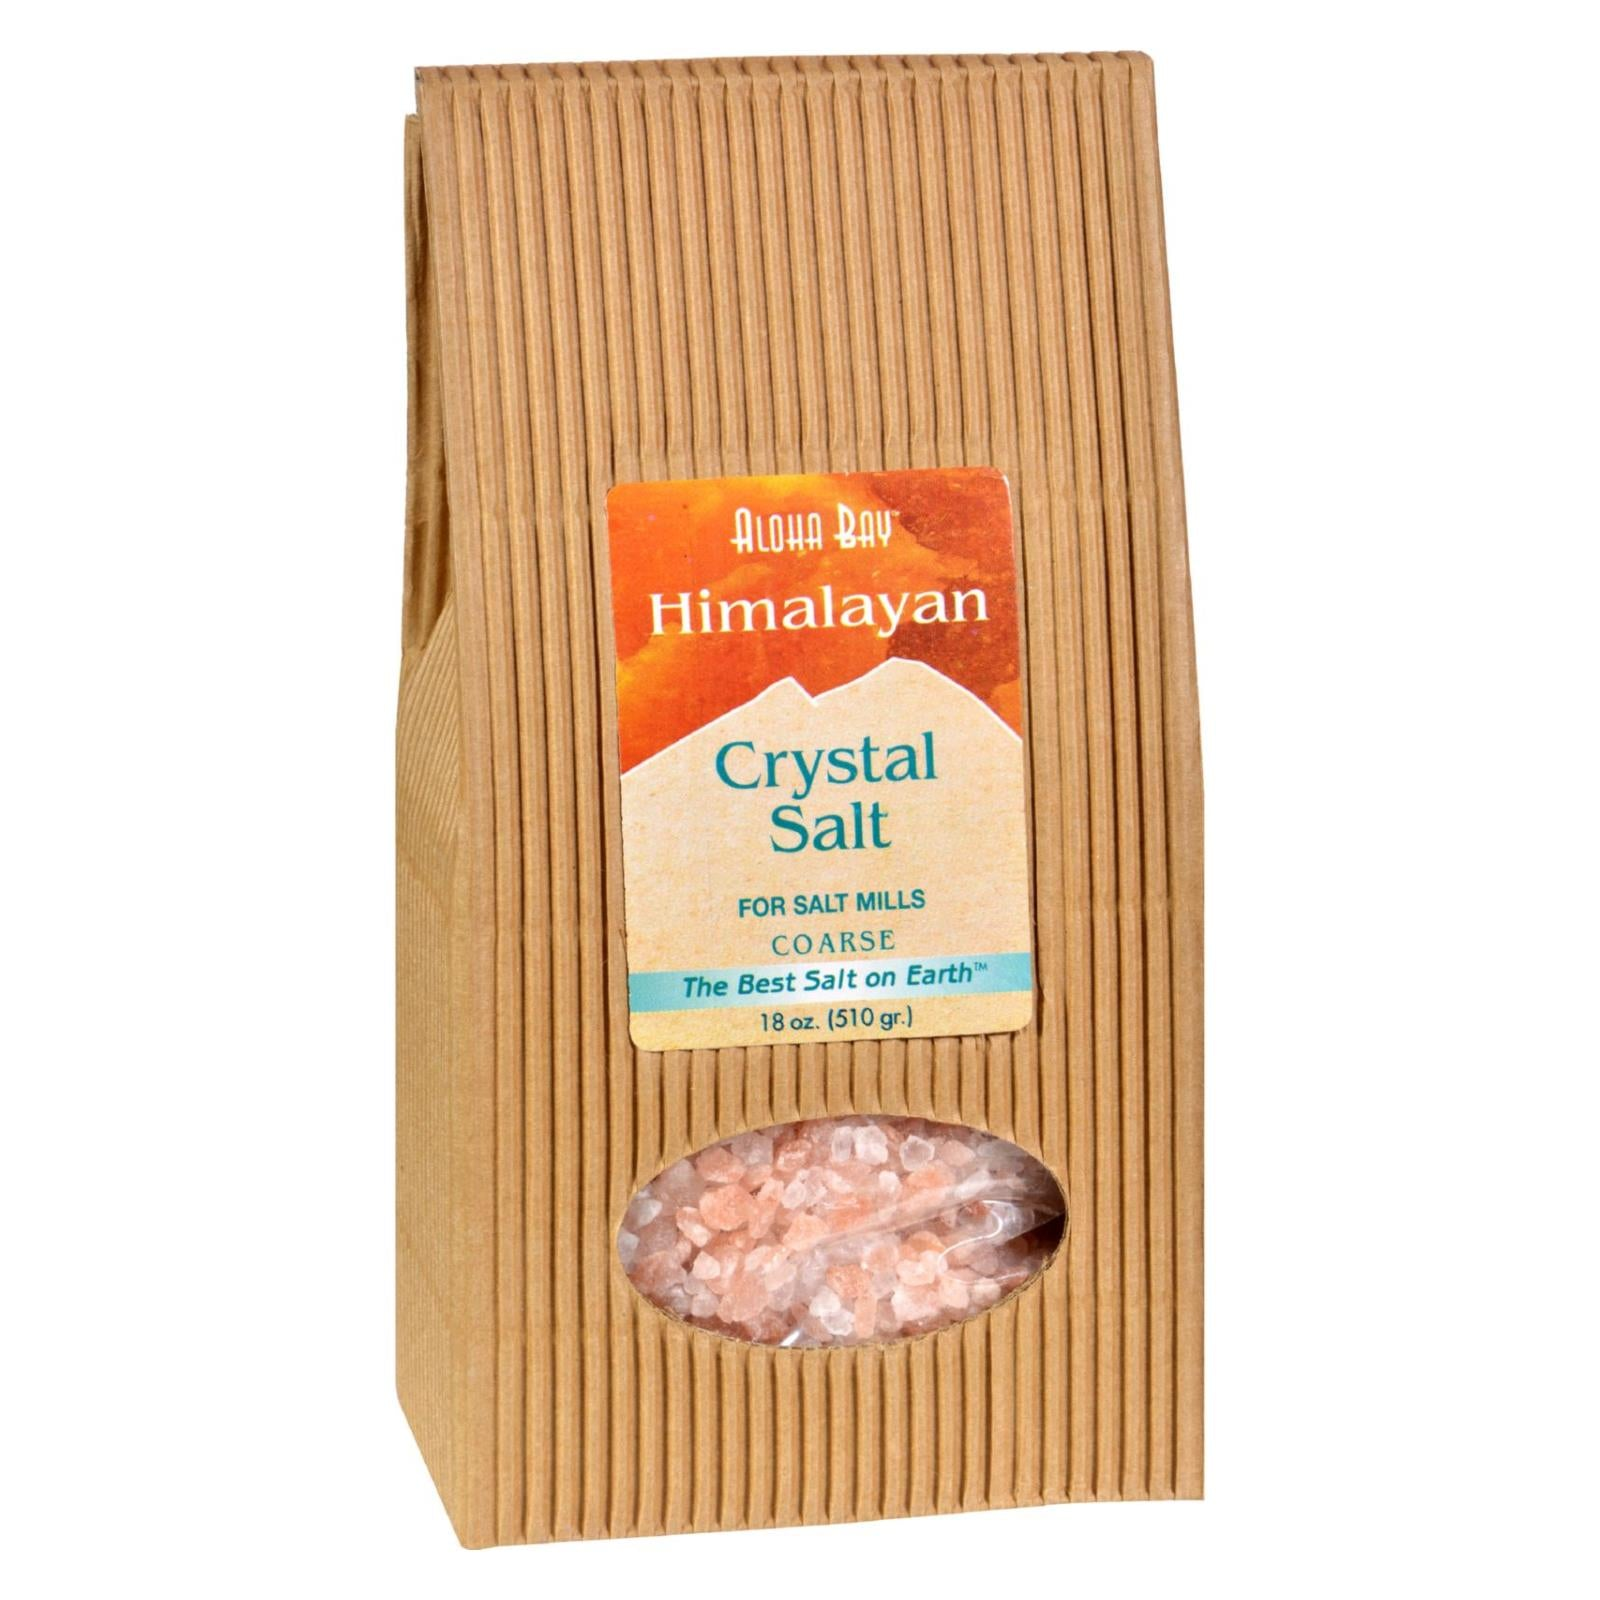 Buy Himalayan Crystal Salt Coarse - 18 oz - Salt, Spices and Seasonings from Veroeco.com